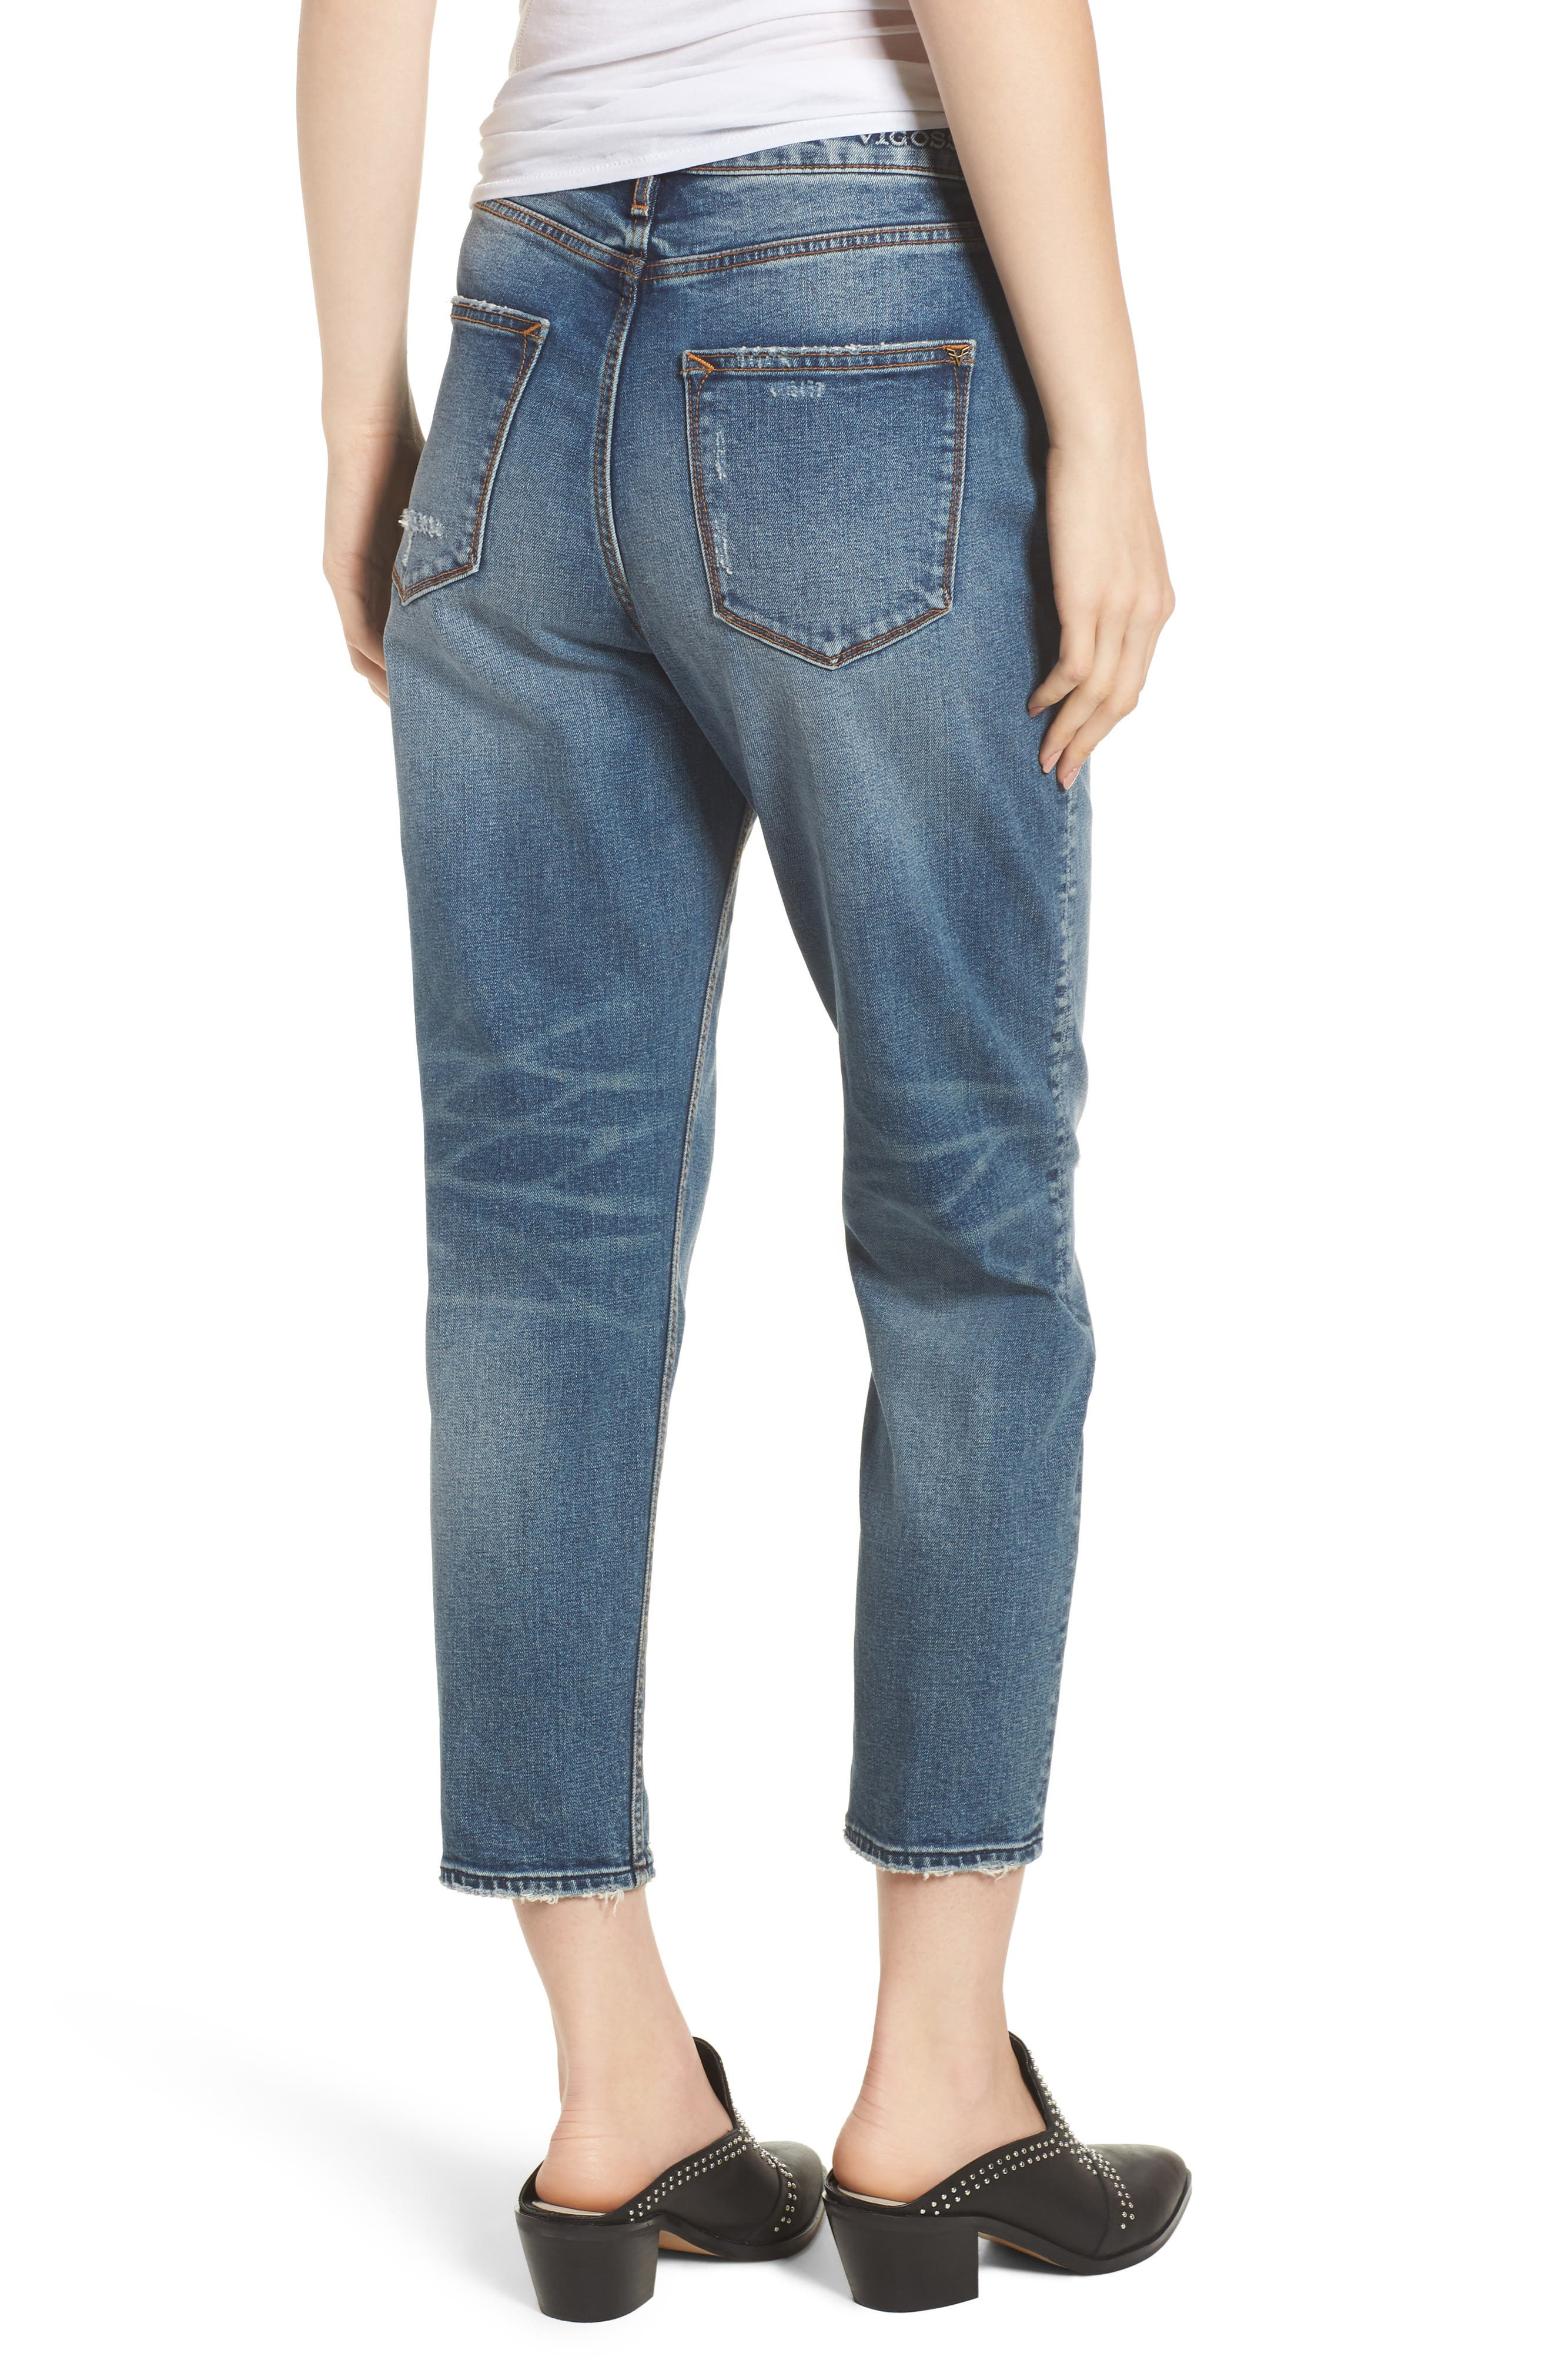 Friday Distressed Tapered Boyfriend Jeans,                             Alternate thumbnail 2, color,                             Medium Wash